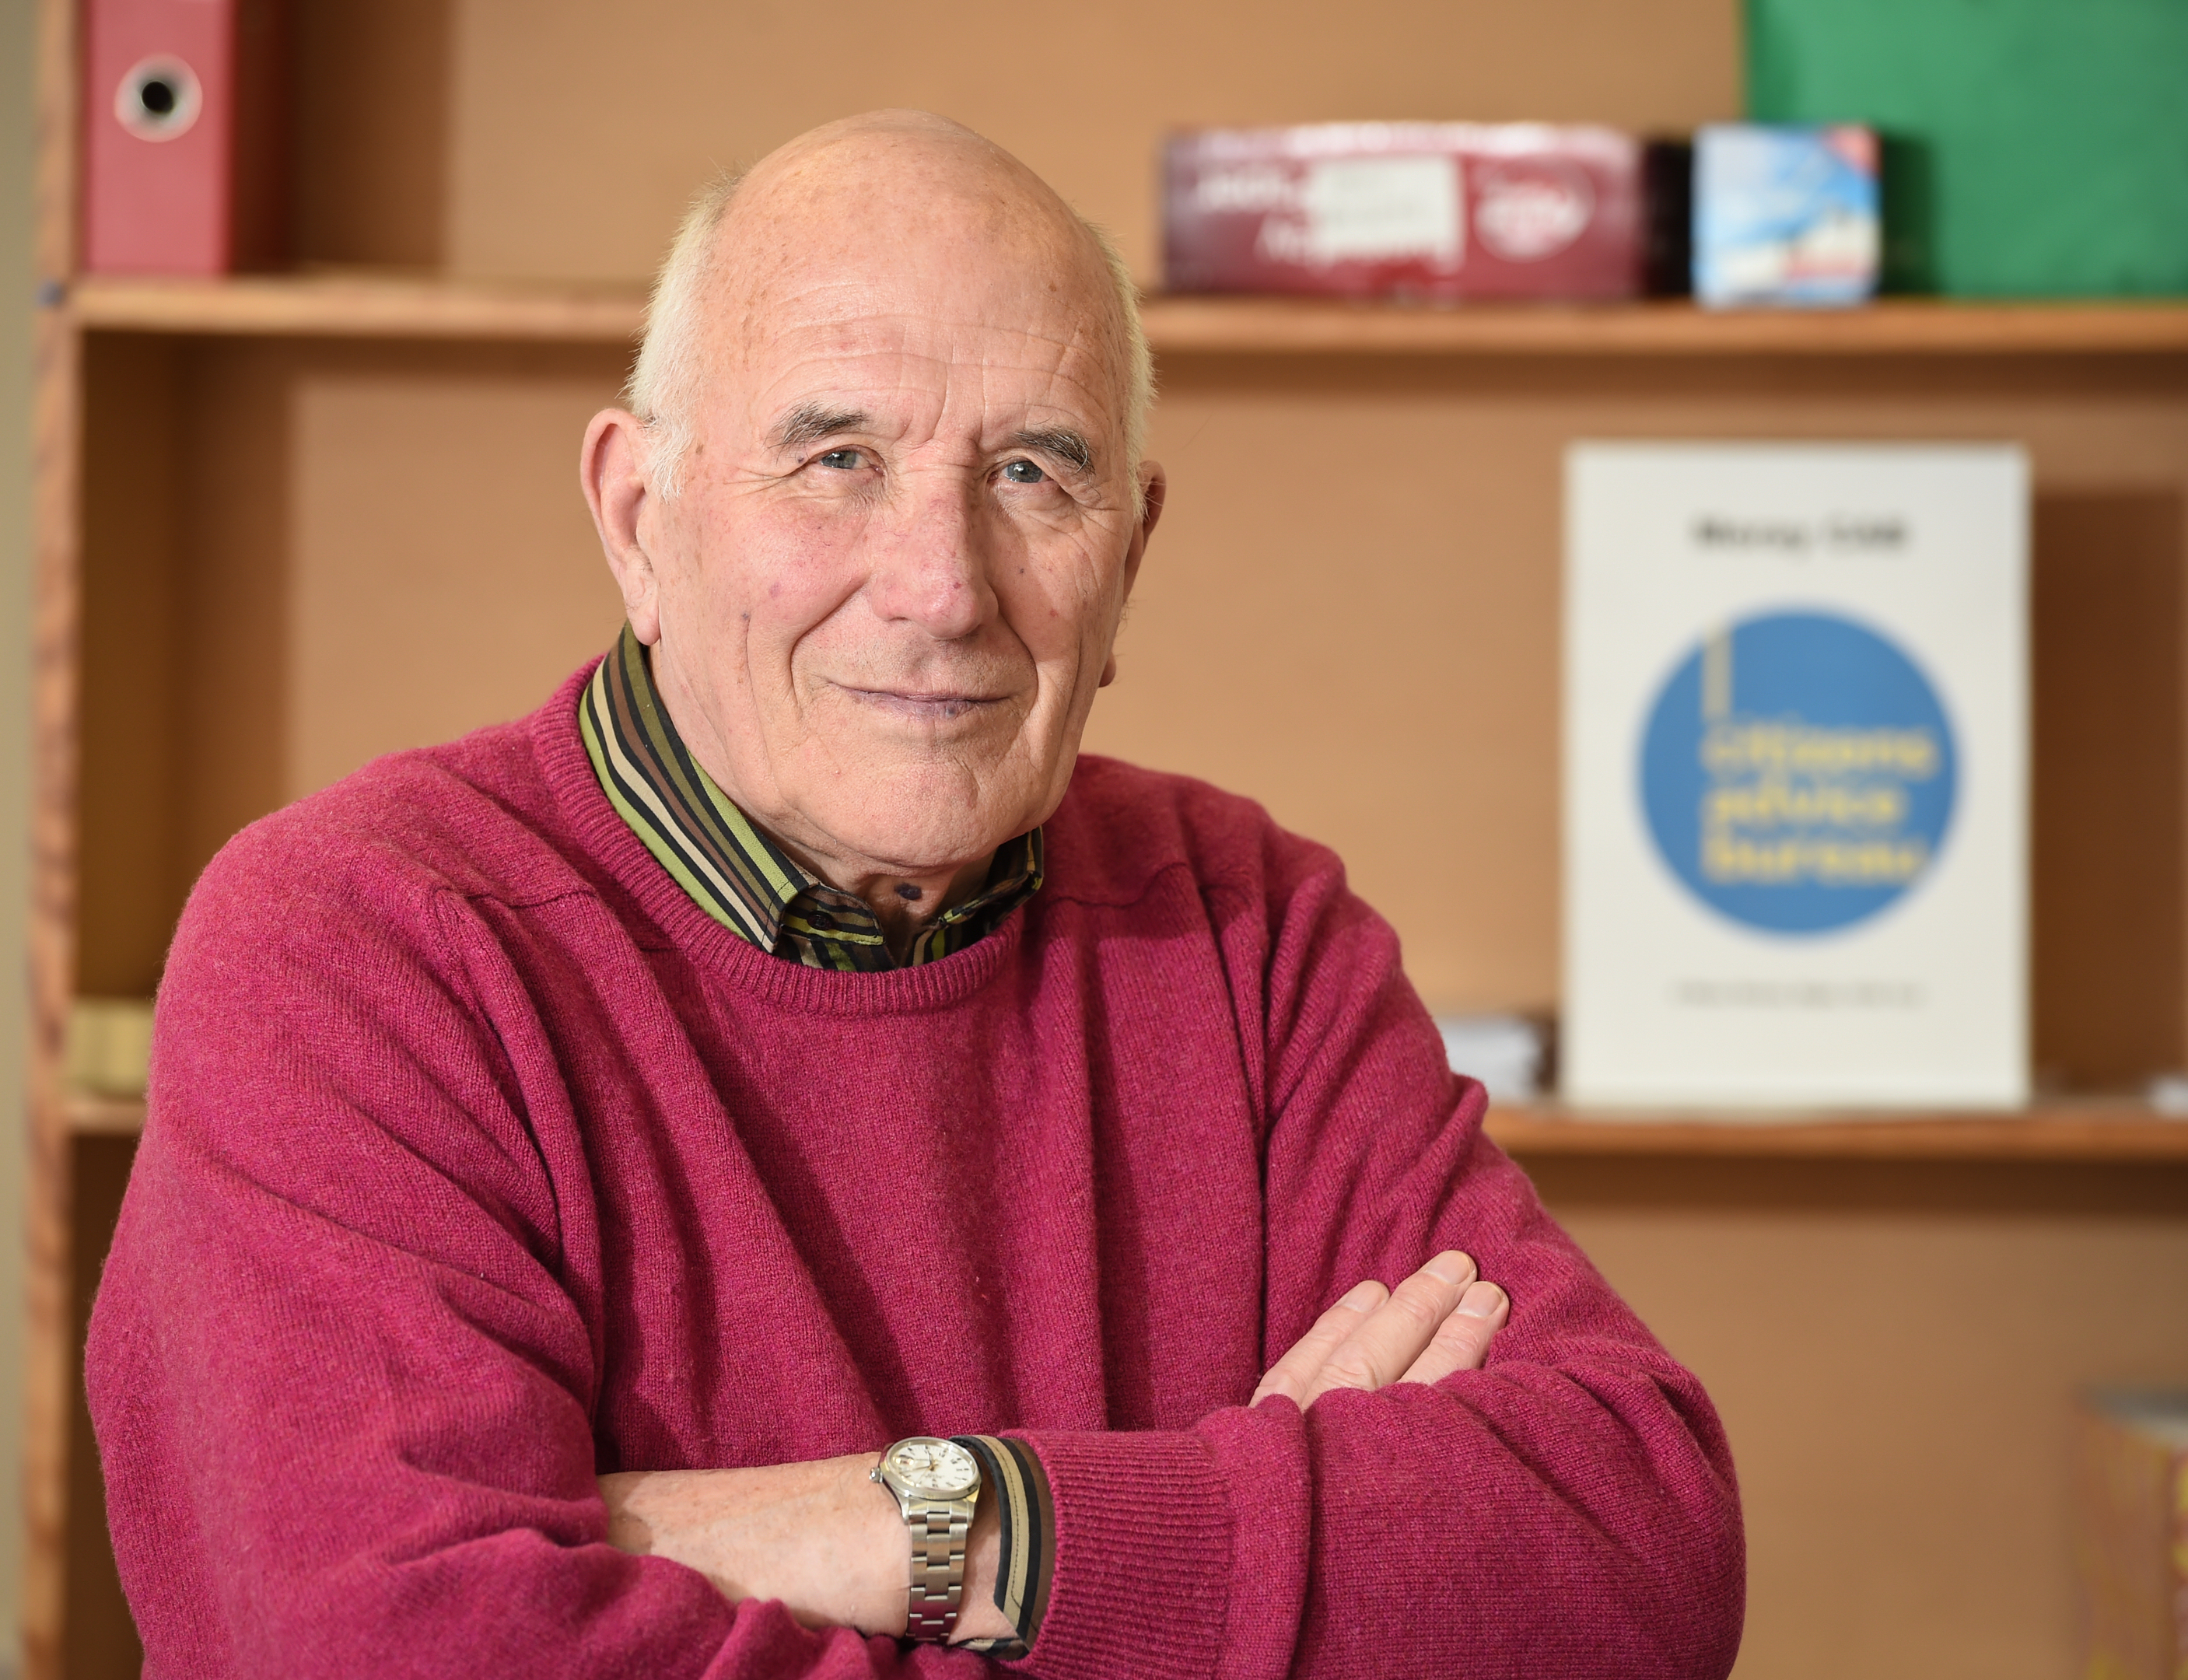 Mr Eddie Coutts, Chairman of Citizens Advice Bureau, Elgin, Moray inside the CAB offices